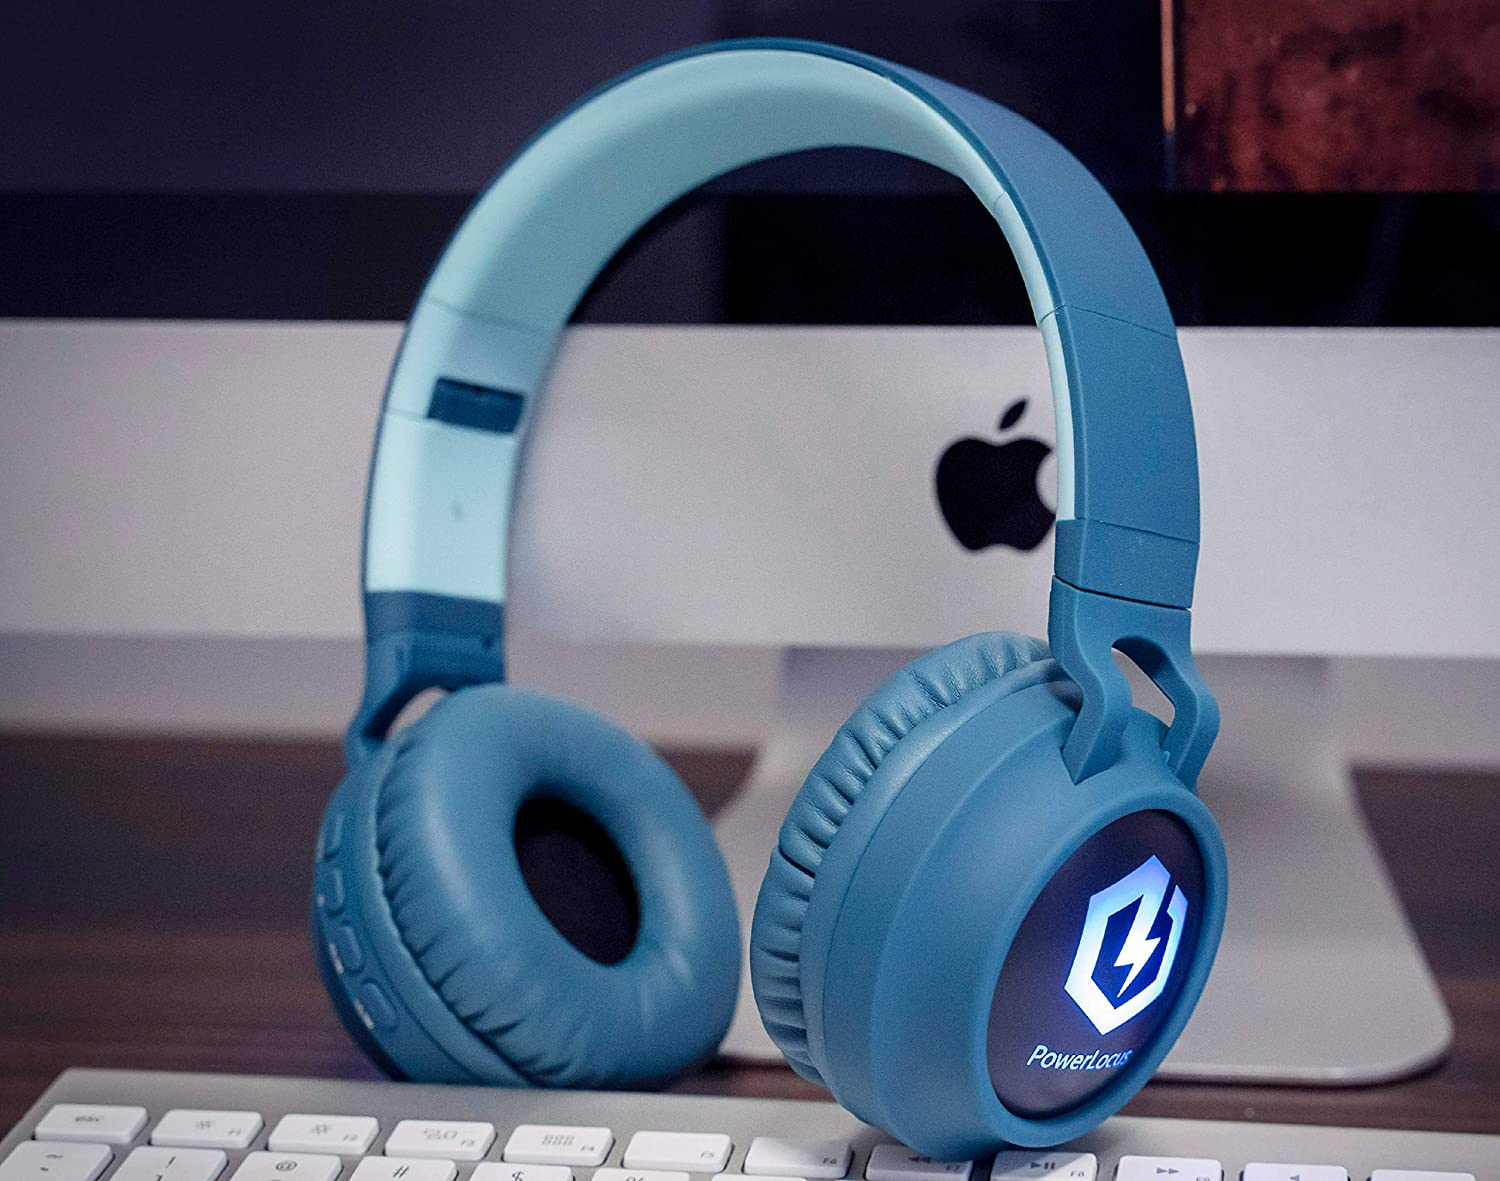 Powerlocus Buddy Wireless Bluetooth Headphones For Kids Non Ears Blue Wireless And Wired Headphone For Cell Phones Tablets Pc Laptop Kid Headphone Over Ear With Led Lights With 10h Playtime Kasharindia Com